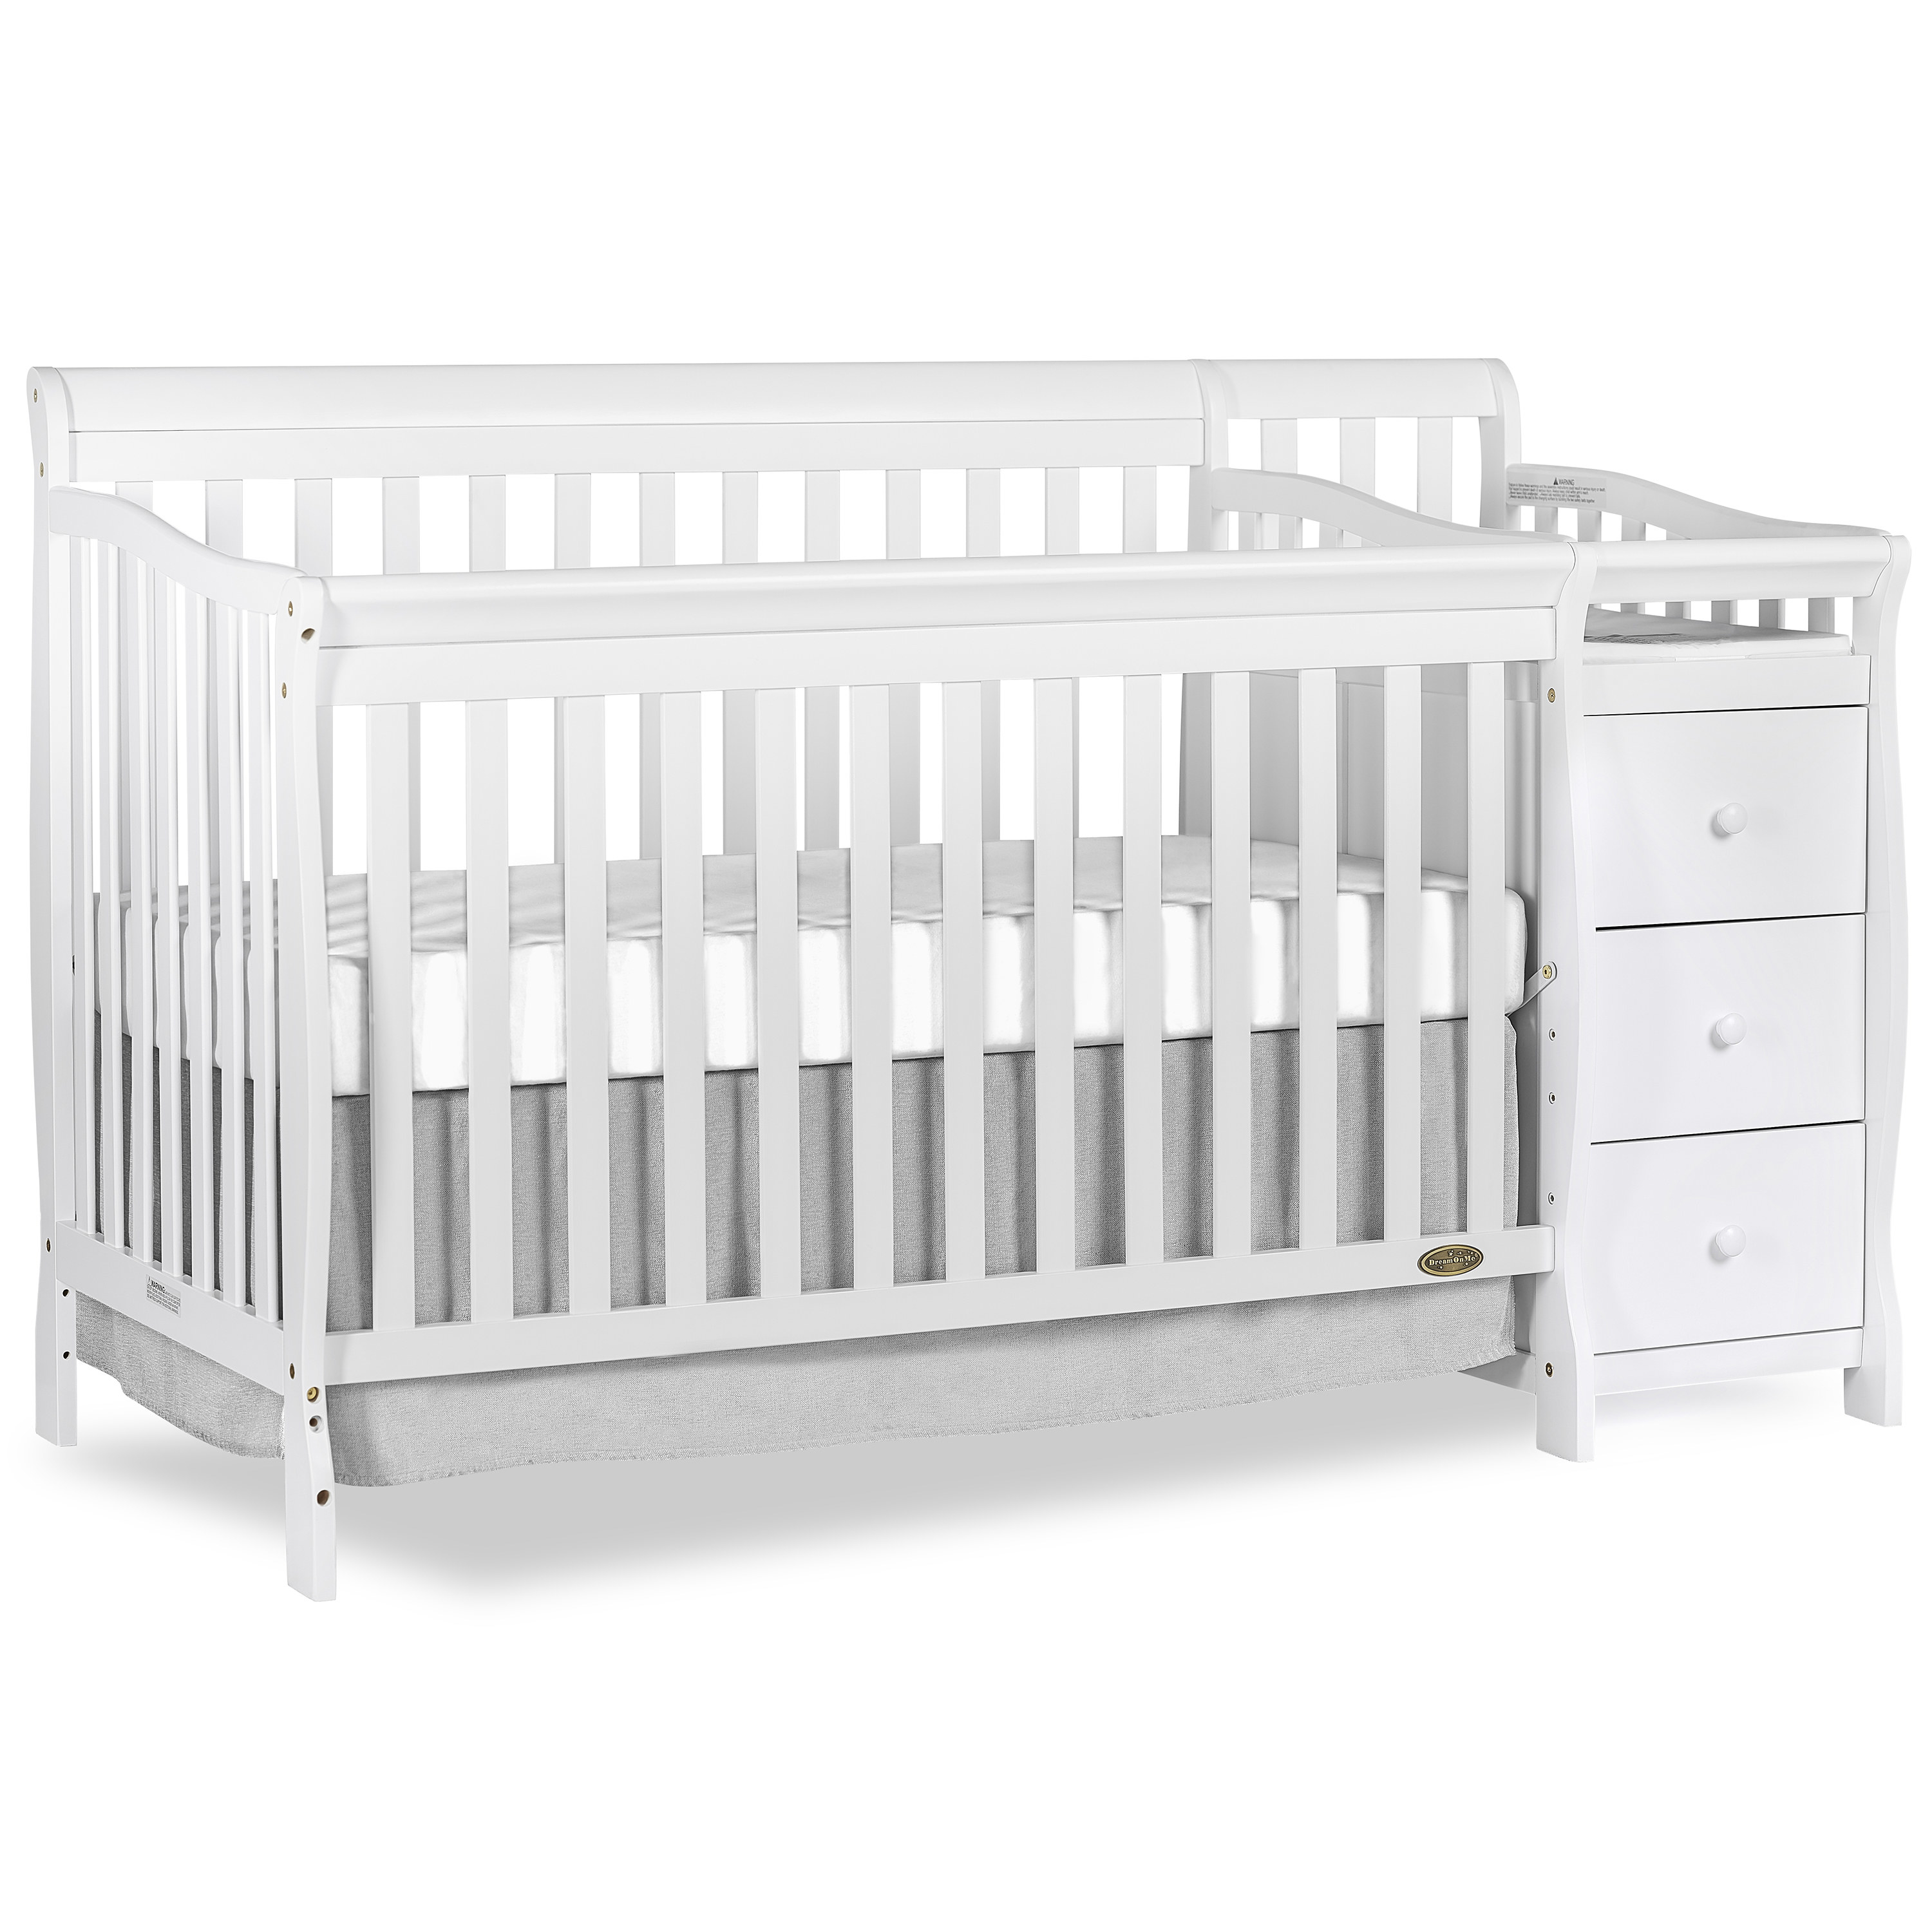 a white convertible crib with a changing table and drawers on the side